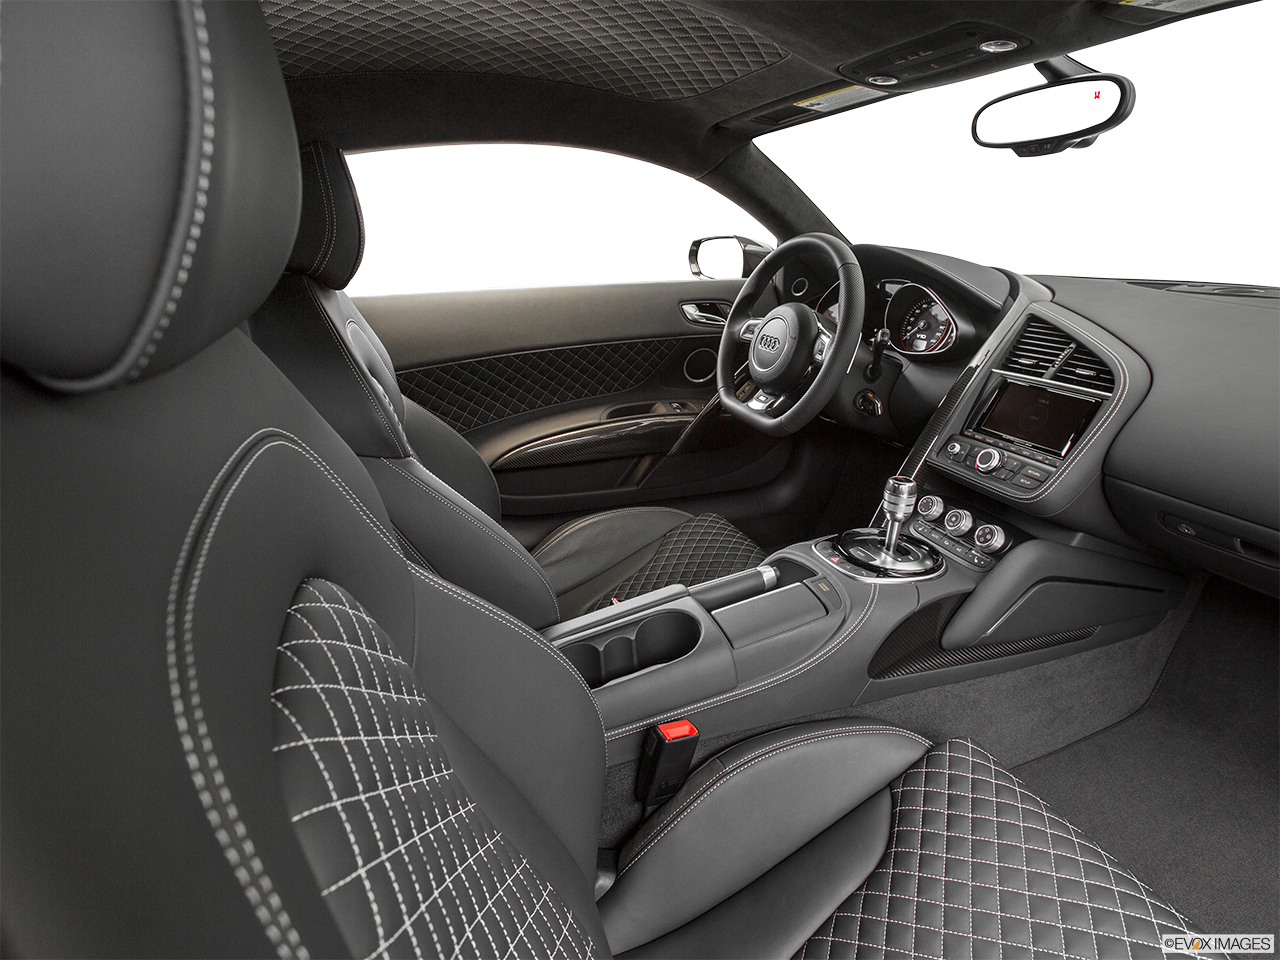 2015 Audi R8 Conv Automatic quattro Spyder V10 - Fake Buck Shot - Interior from Passenger B pillar